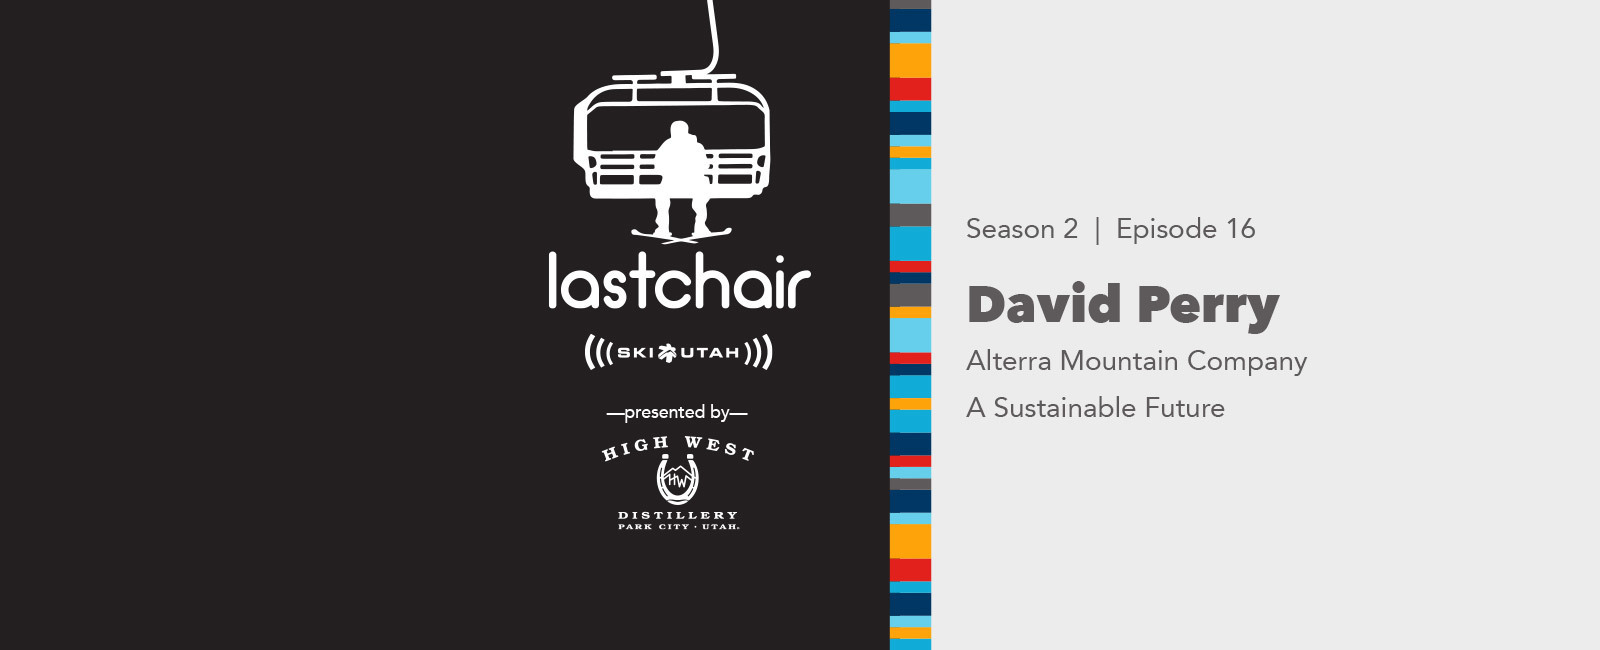 David Perry: A Sustainable Future